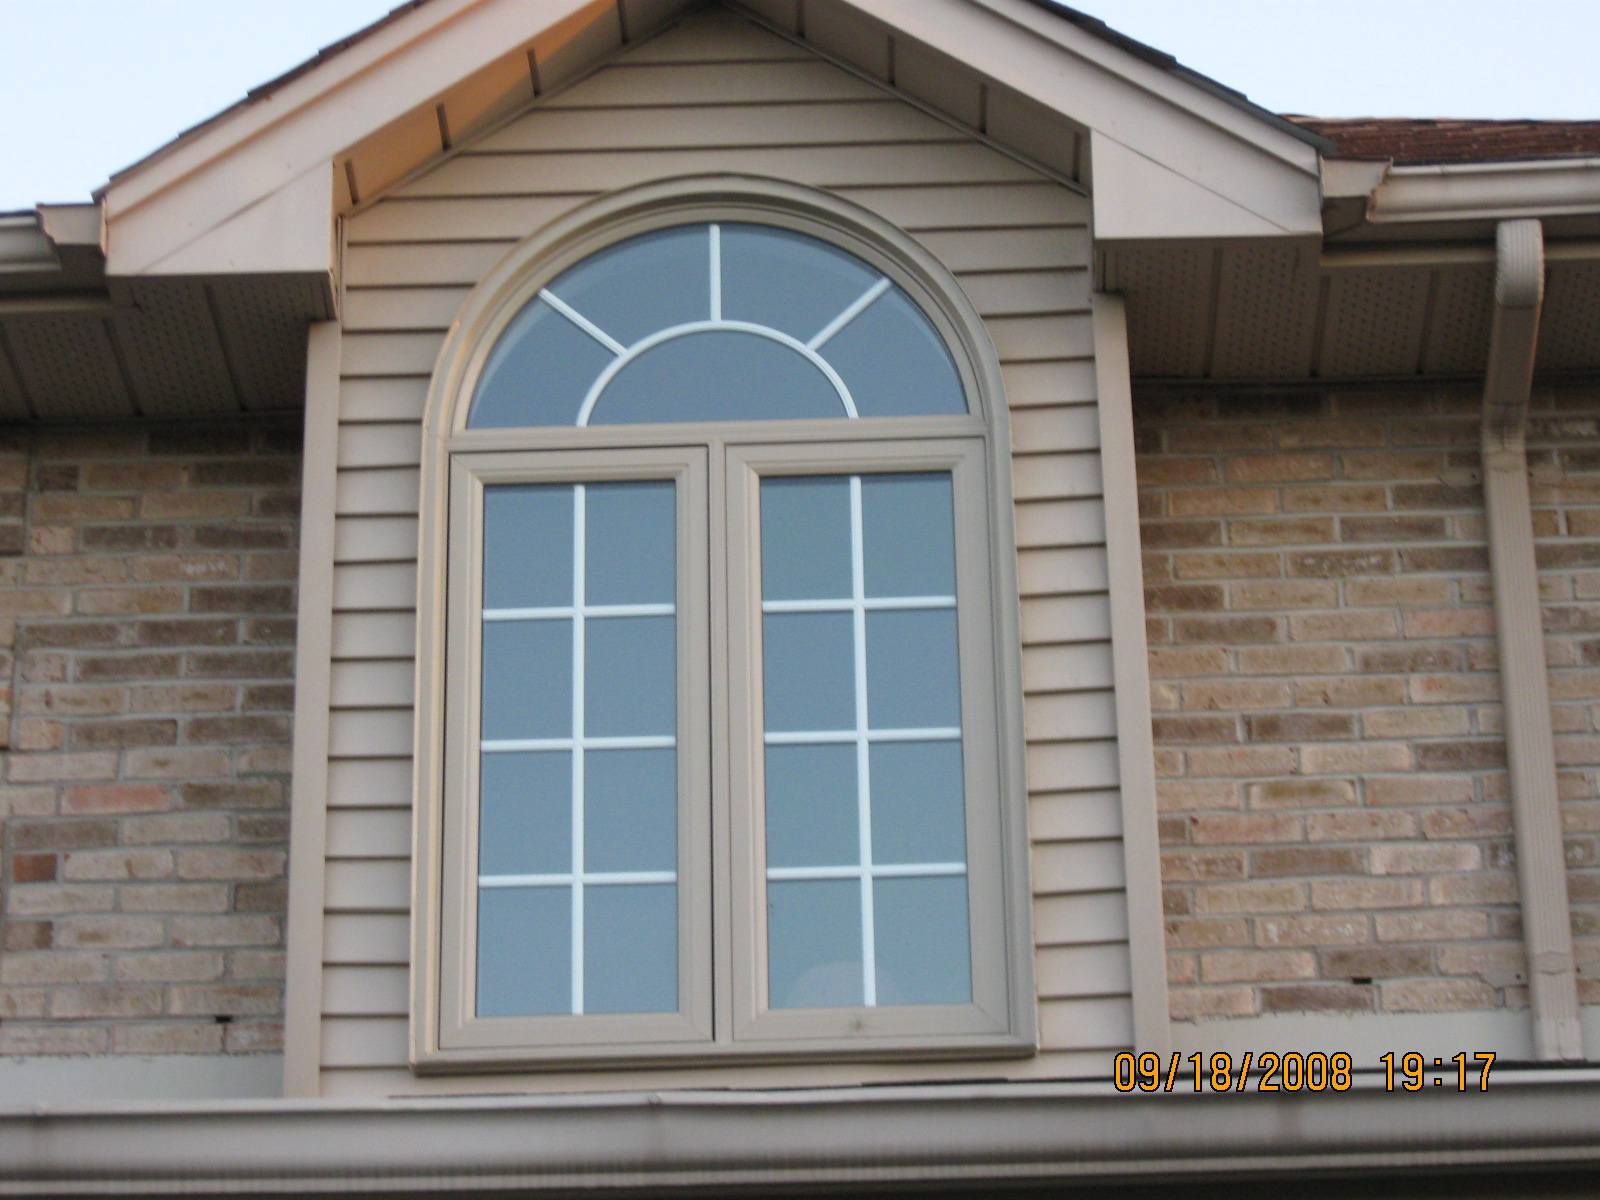 CURVED WINDOW WITH COLOURED WINDOW AND WHITE GRILLS